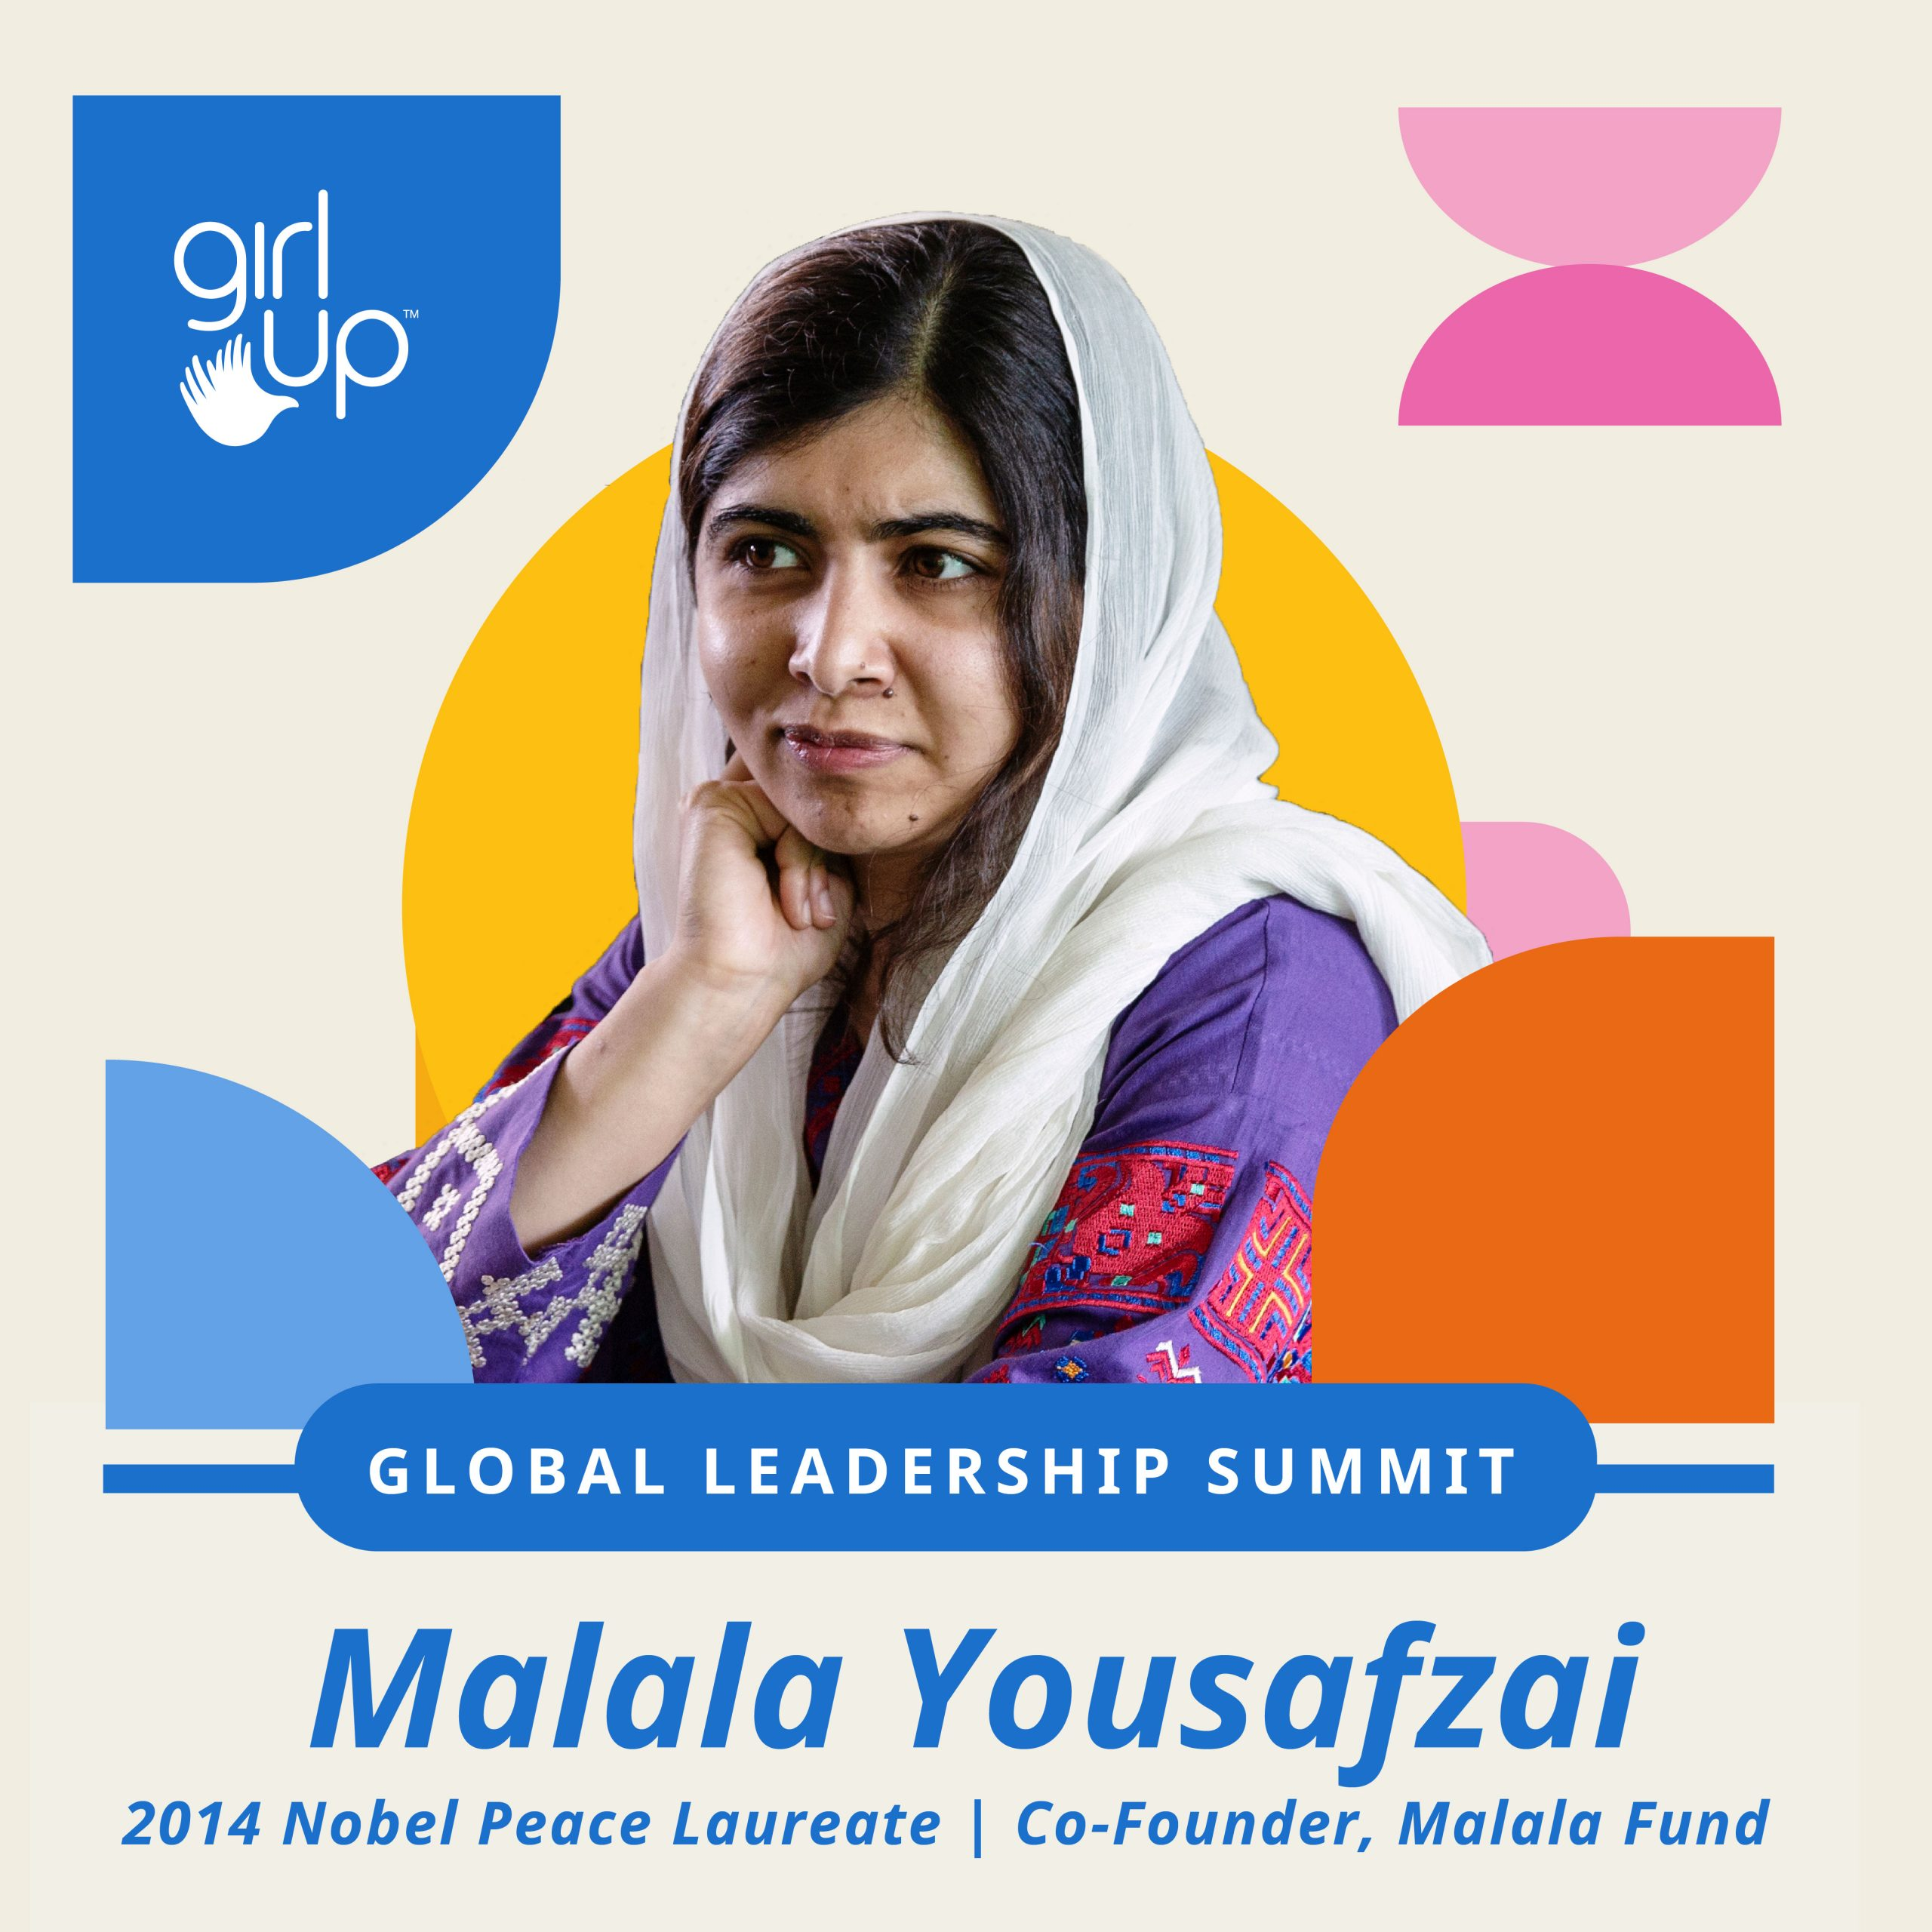 Malala is an advocate for girls' education